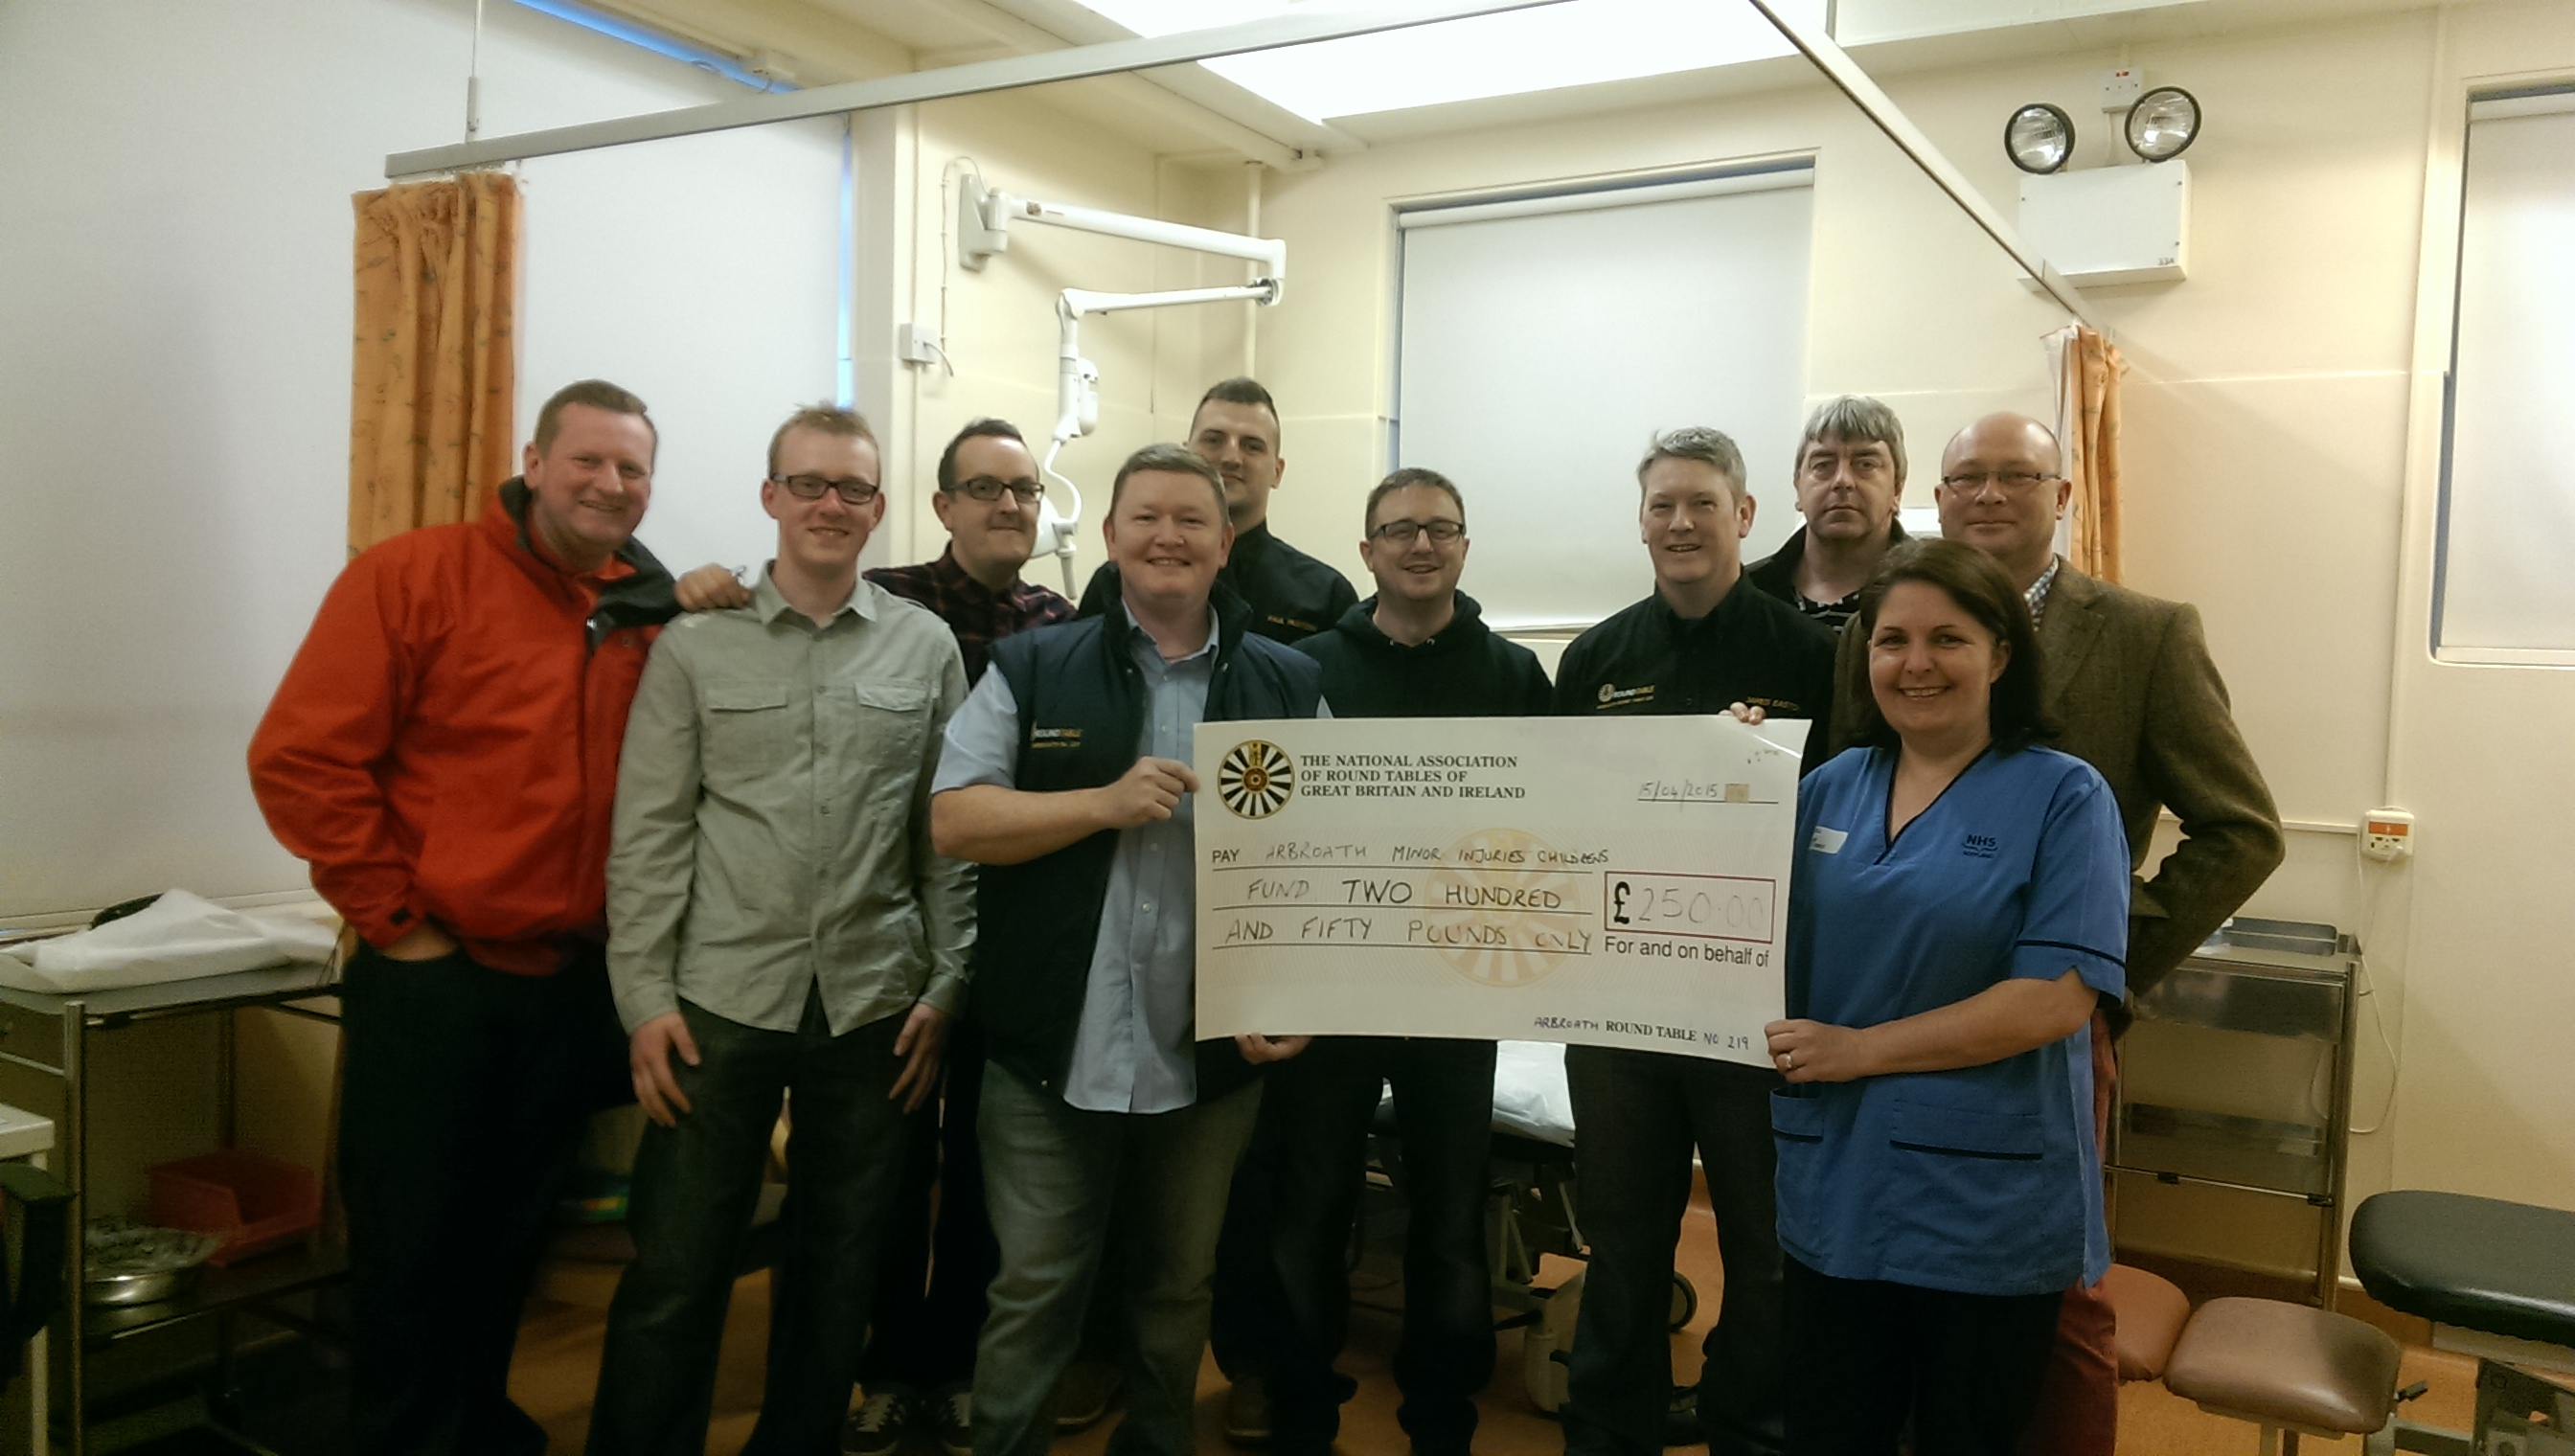 Arbroath Infirmary Donation